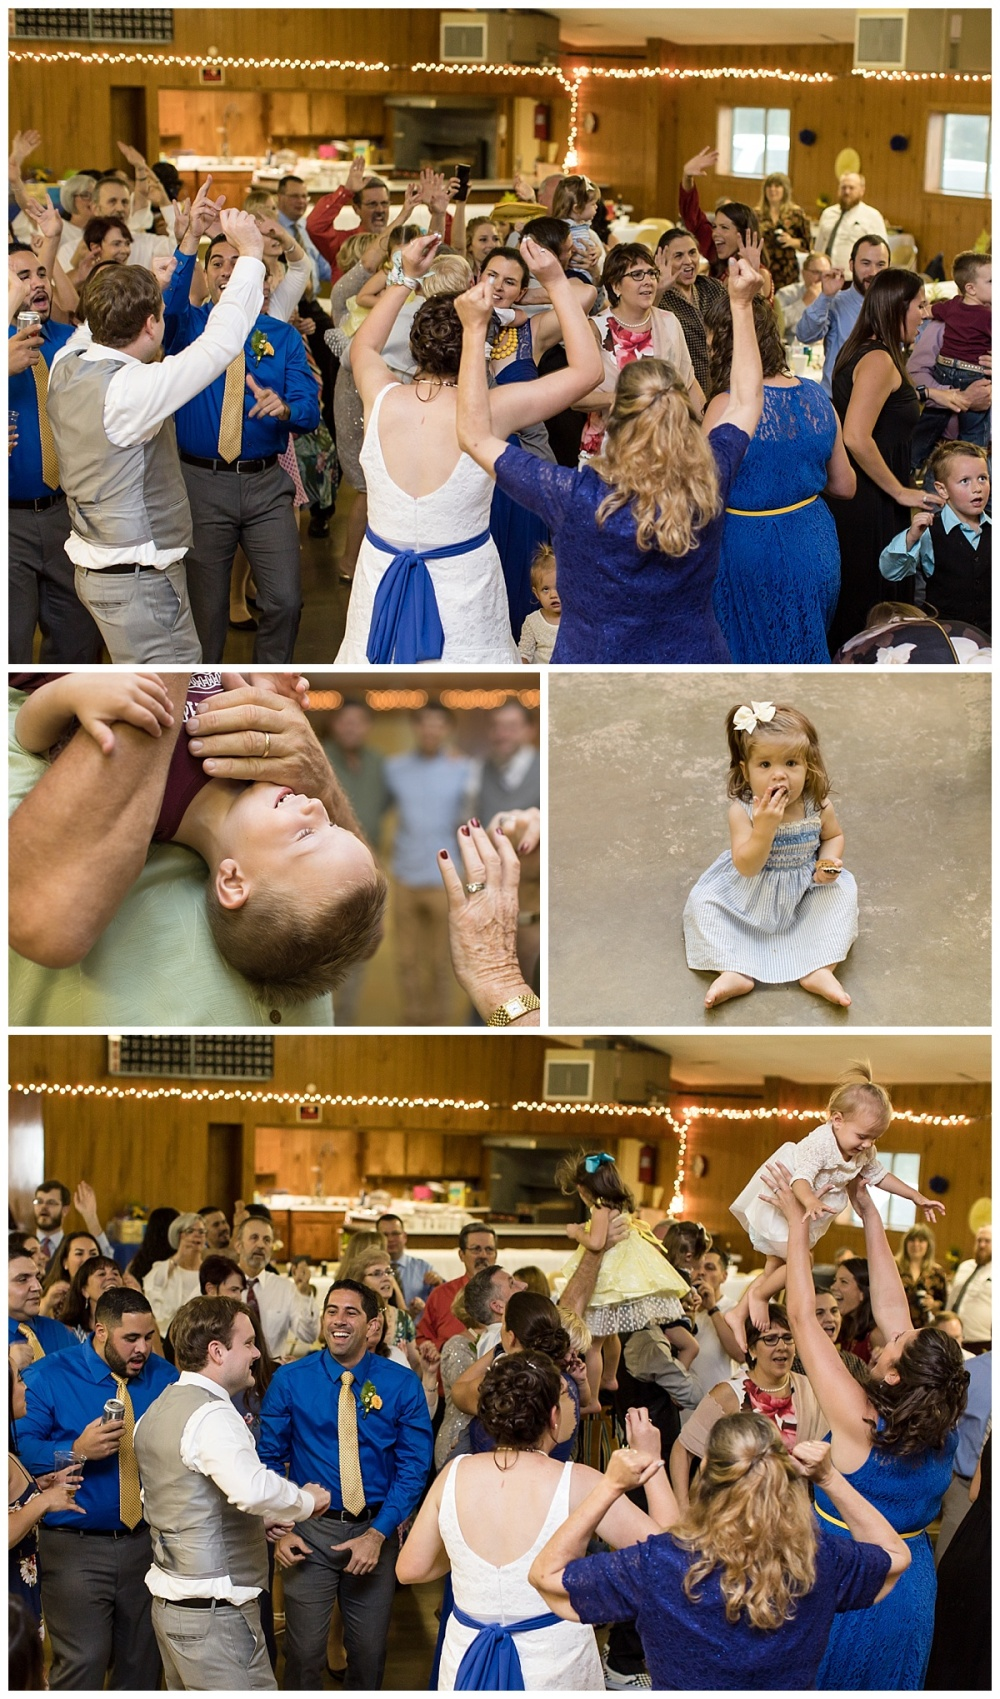 Texas-Wedding-Photographer-La-Coste-Our-Lady-Of-Grace-Church-Bride-Groom-Lego-Theme-Carly-Barton-Photography_0087.jpg